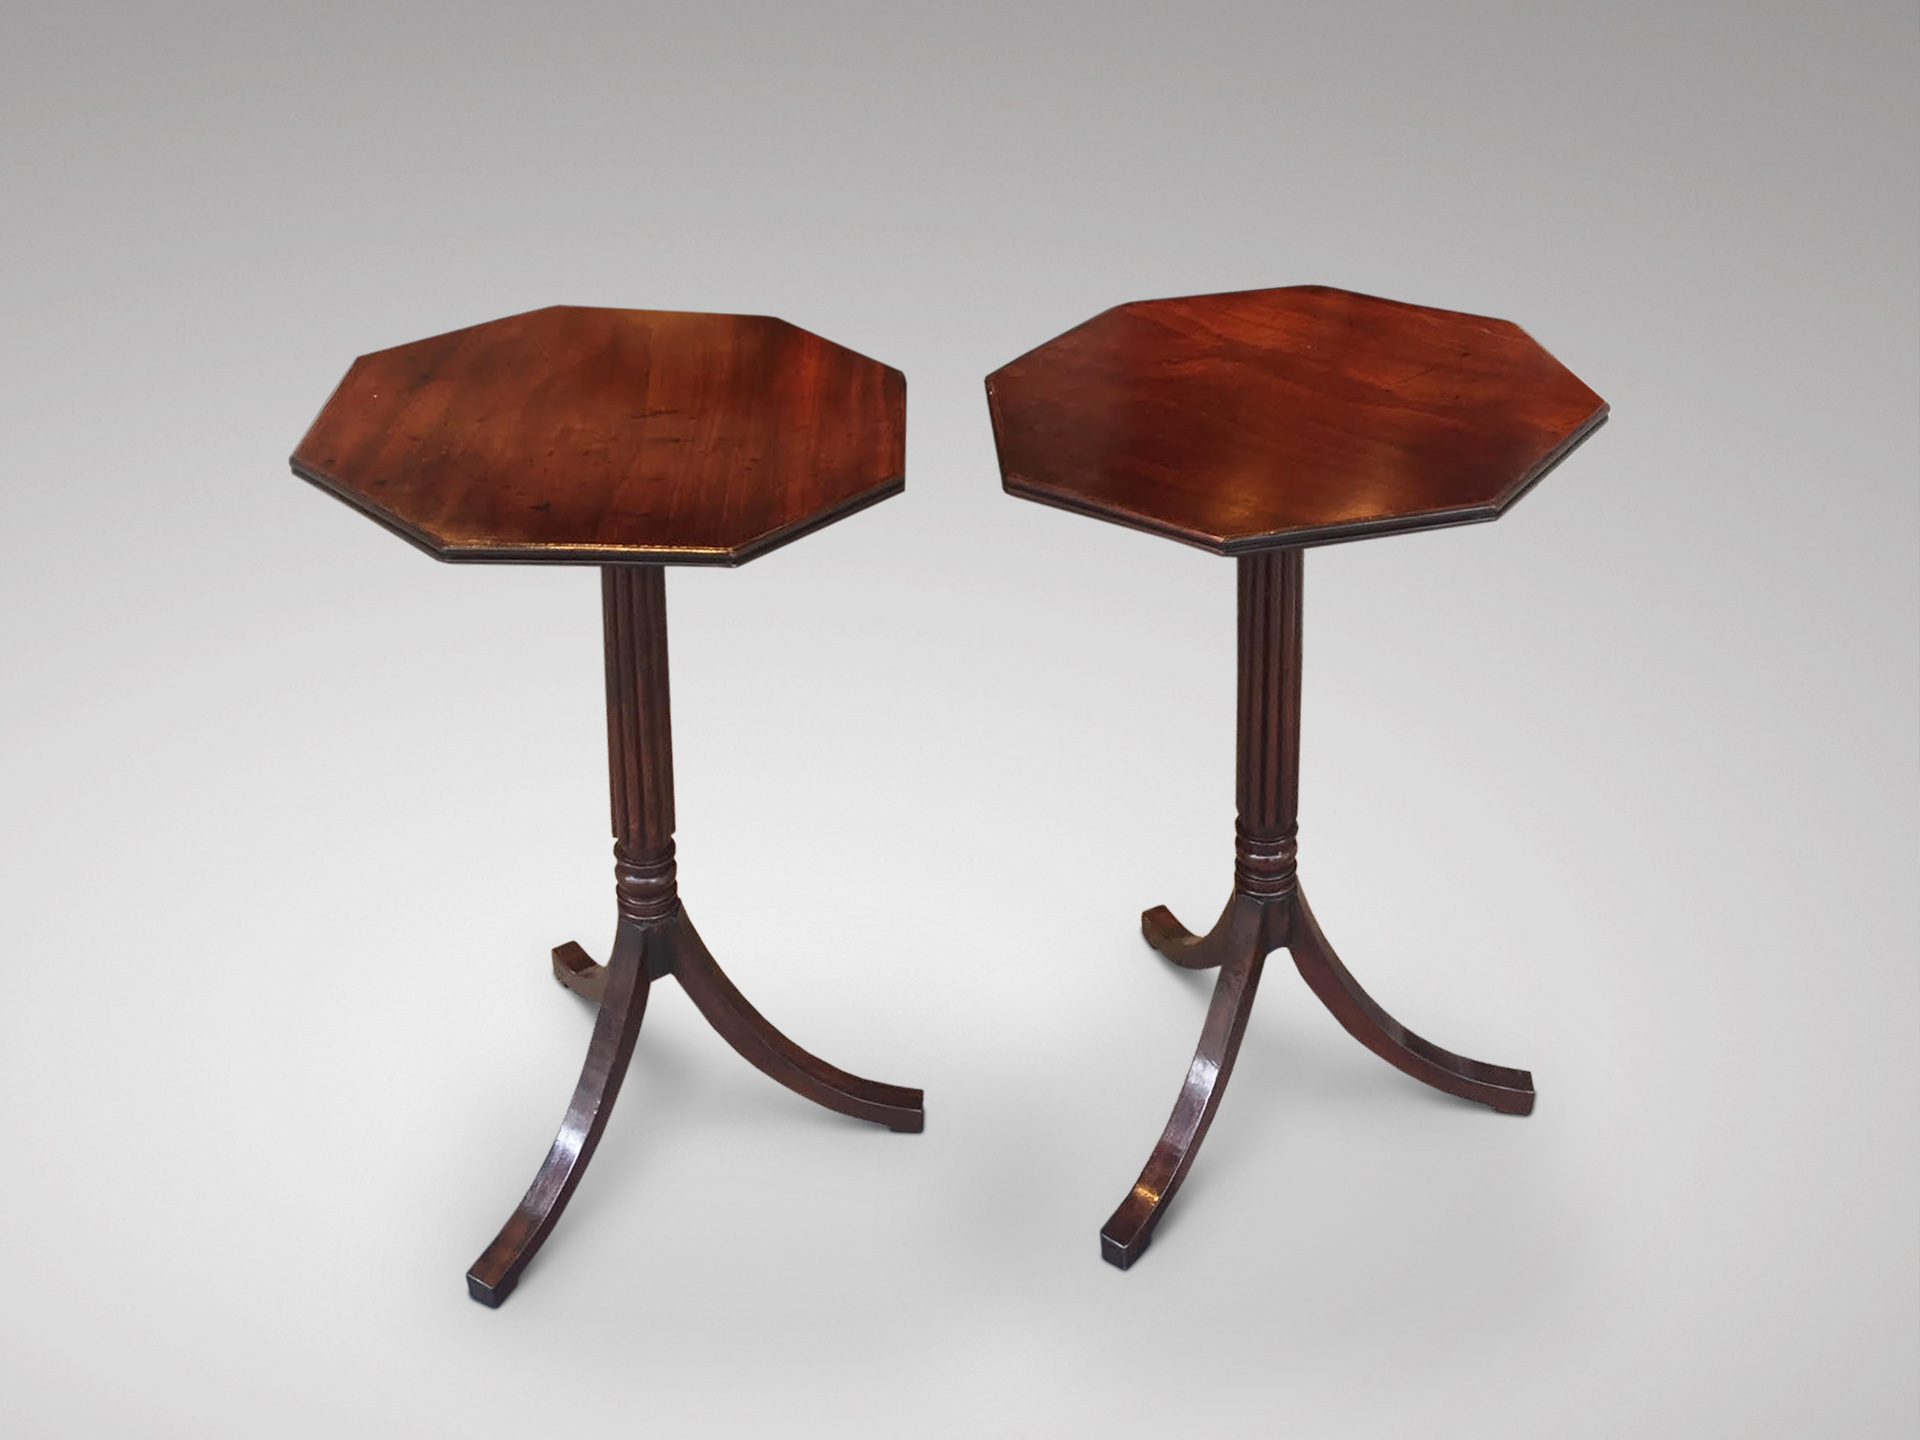 SOLD/PAIR OF REGENCY PERIOD MAHOGANY TRIPOD TABLES